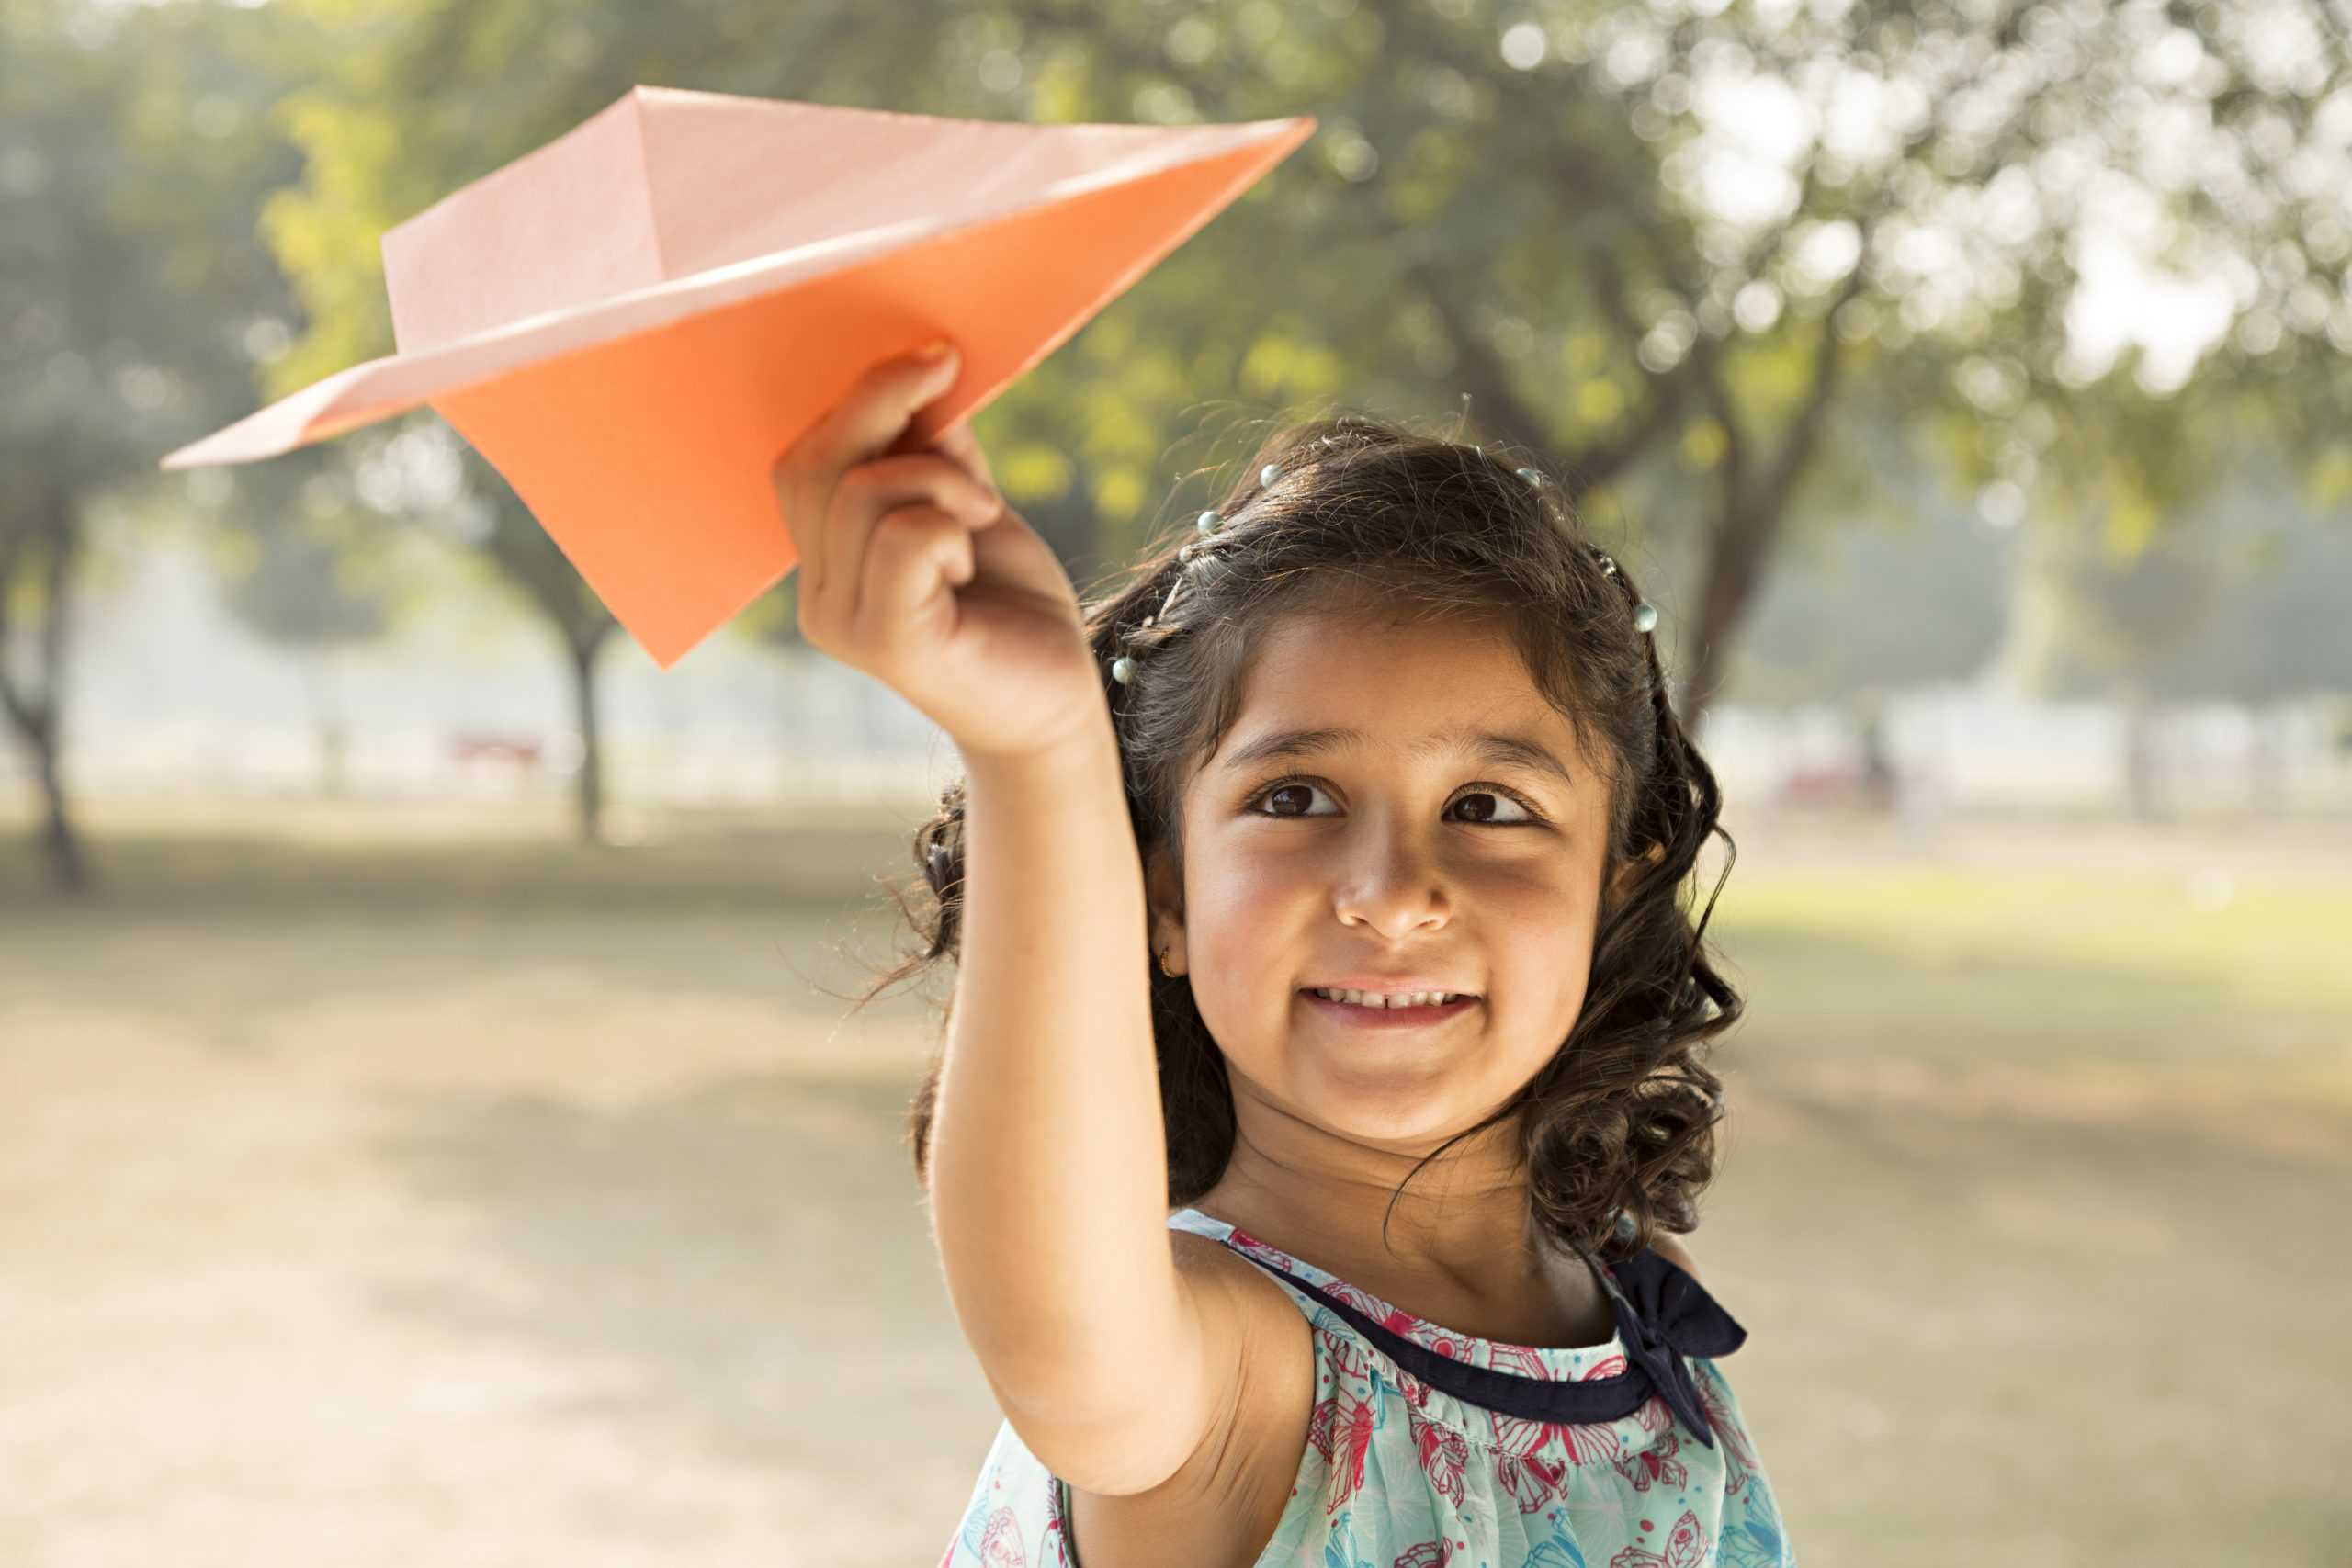 Girl playing with paper airplane